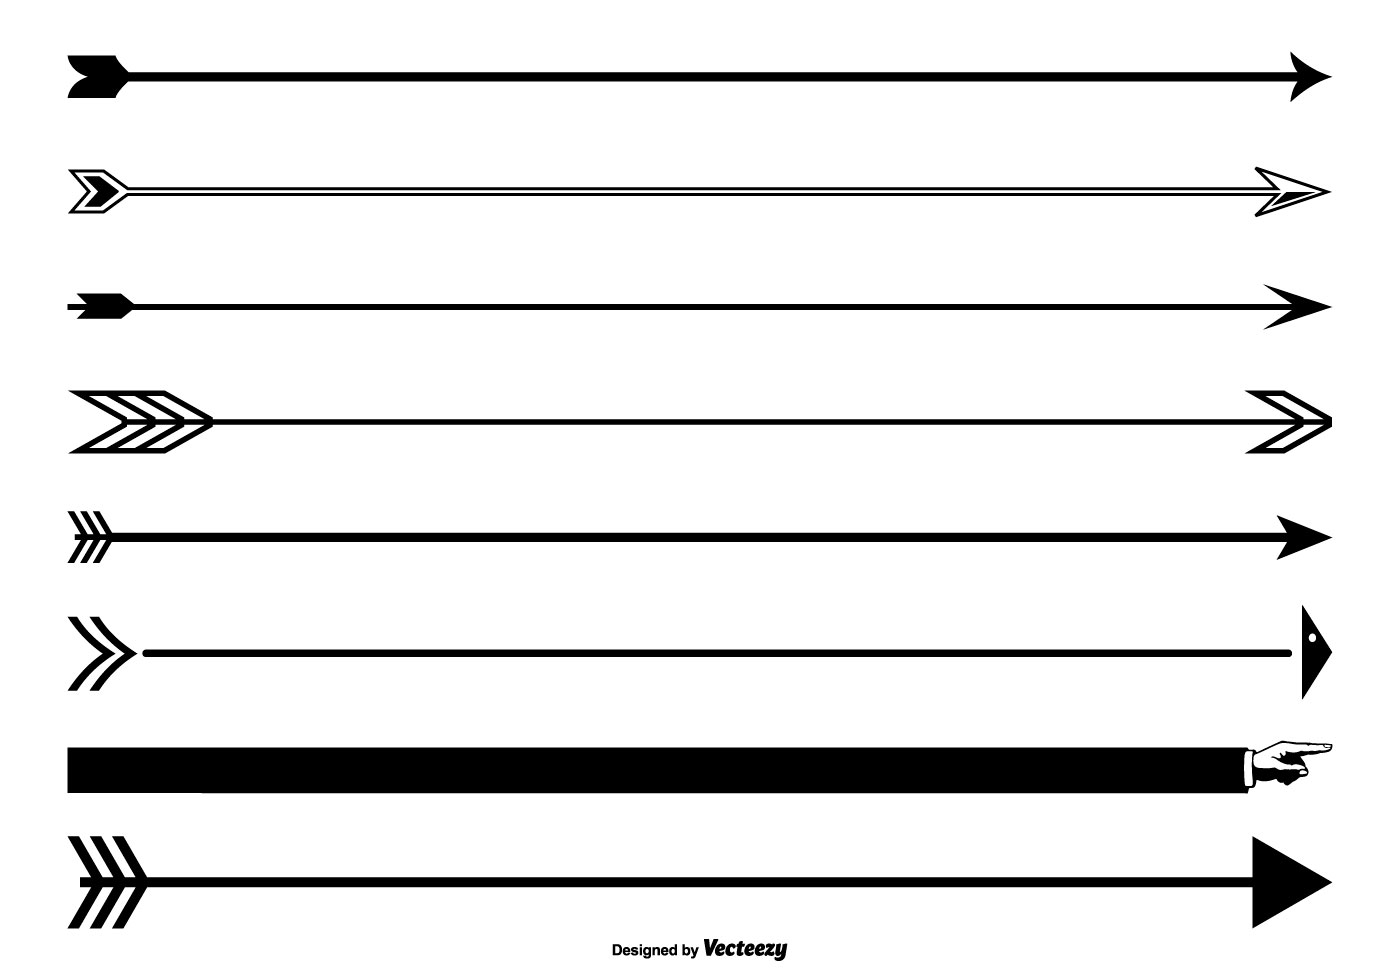 Vector Drawing Lines Excel : Arrow page divider set download free vector art stock